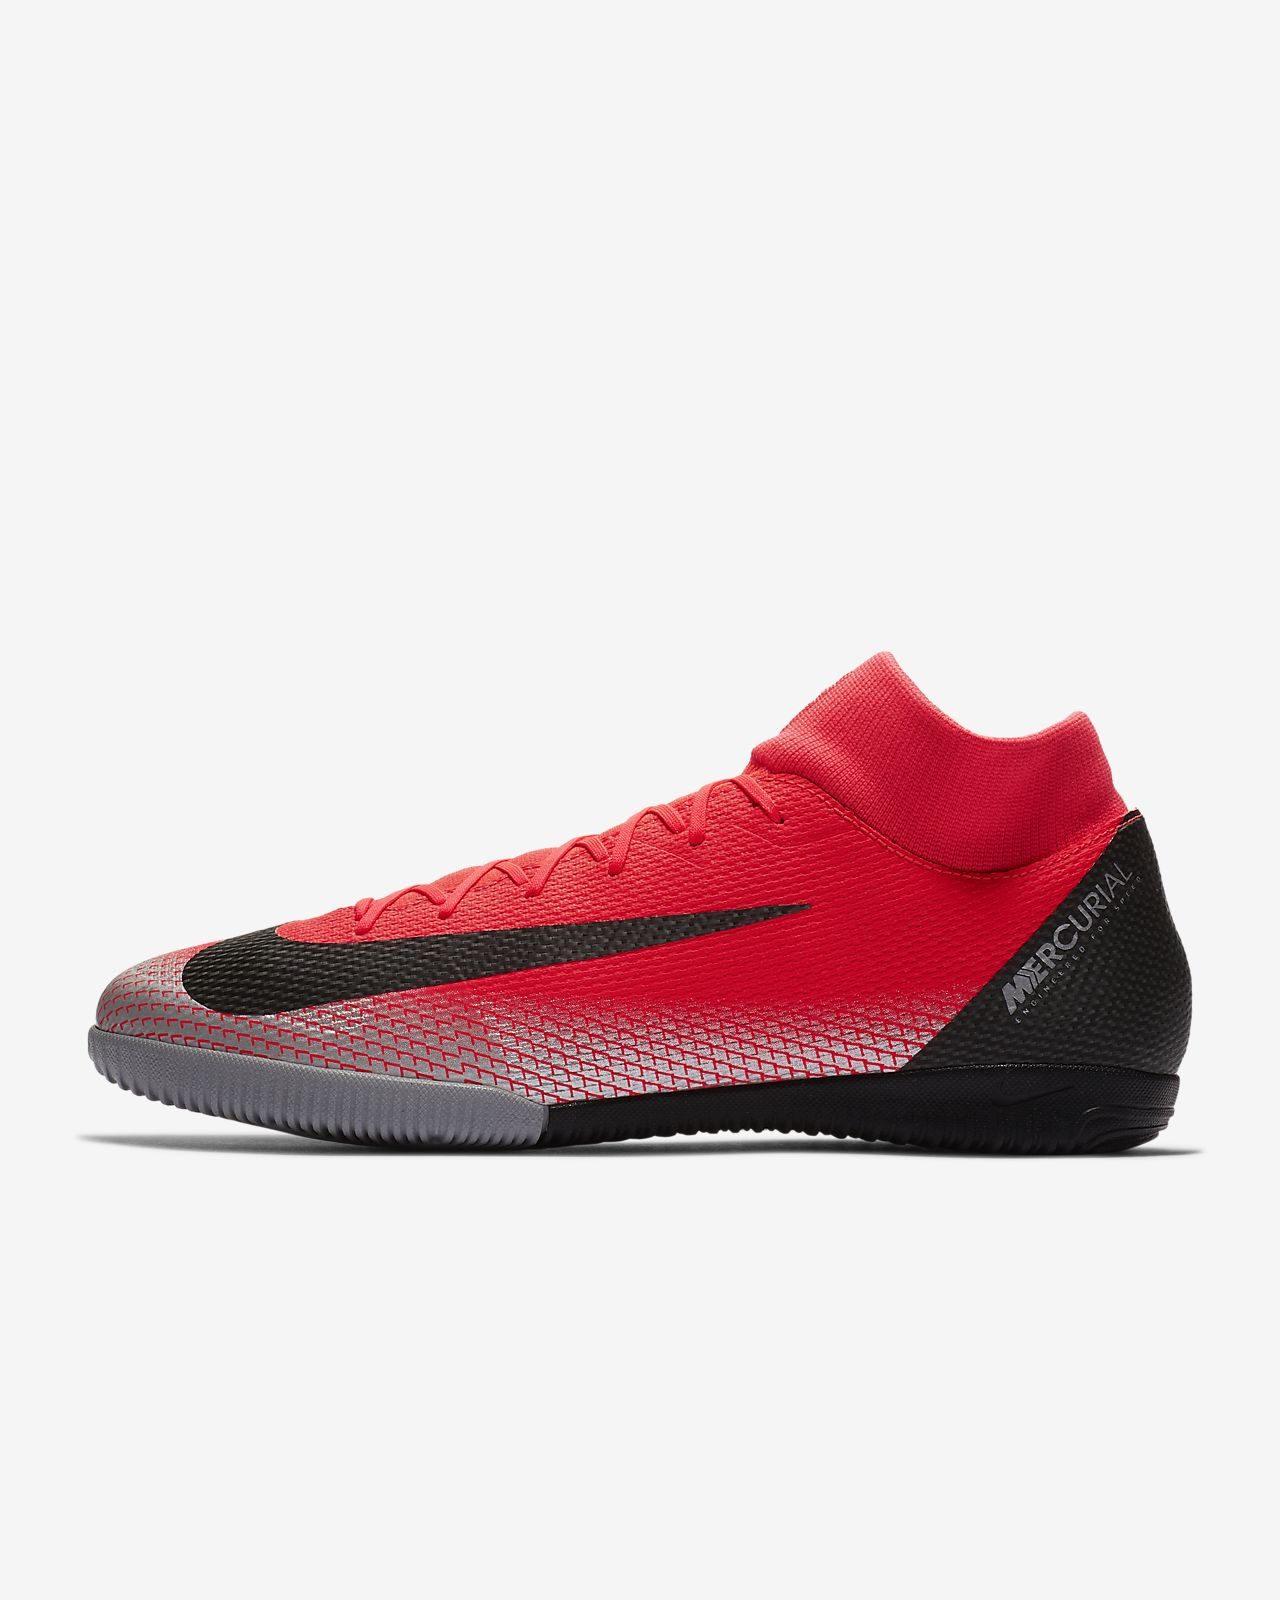 Nike MercurialX Superfly VI Academy CR7 IC Indoor/Court Football Shoe